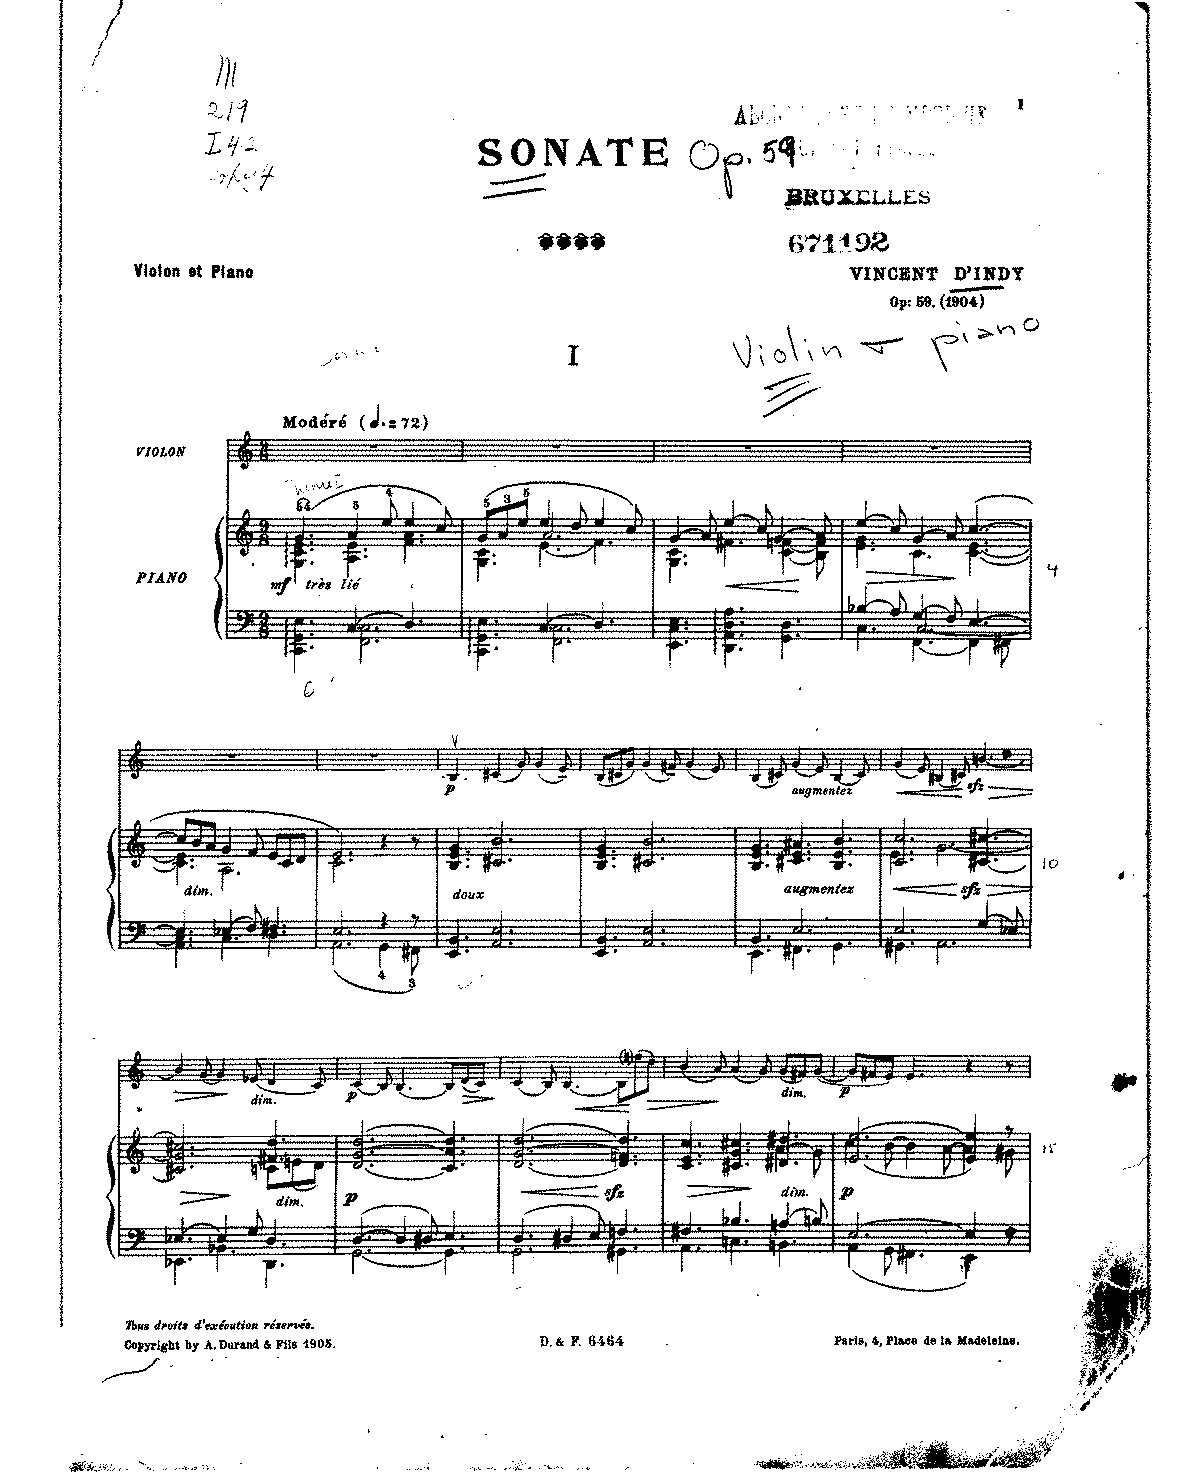 SIBLEY1802.6713.17528.bb3c-39087004859825piano+annotated.pdf